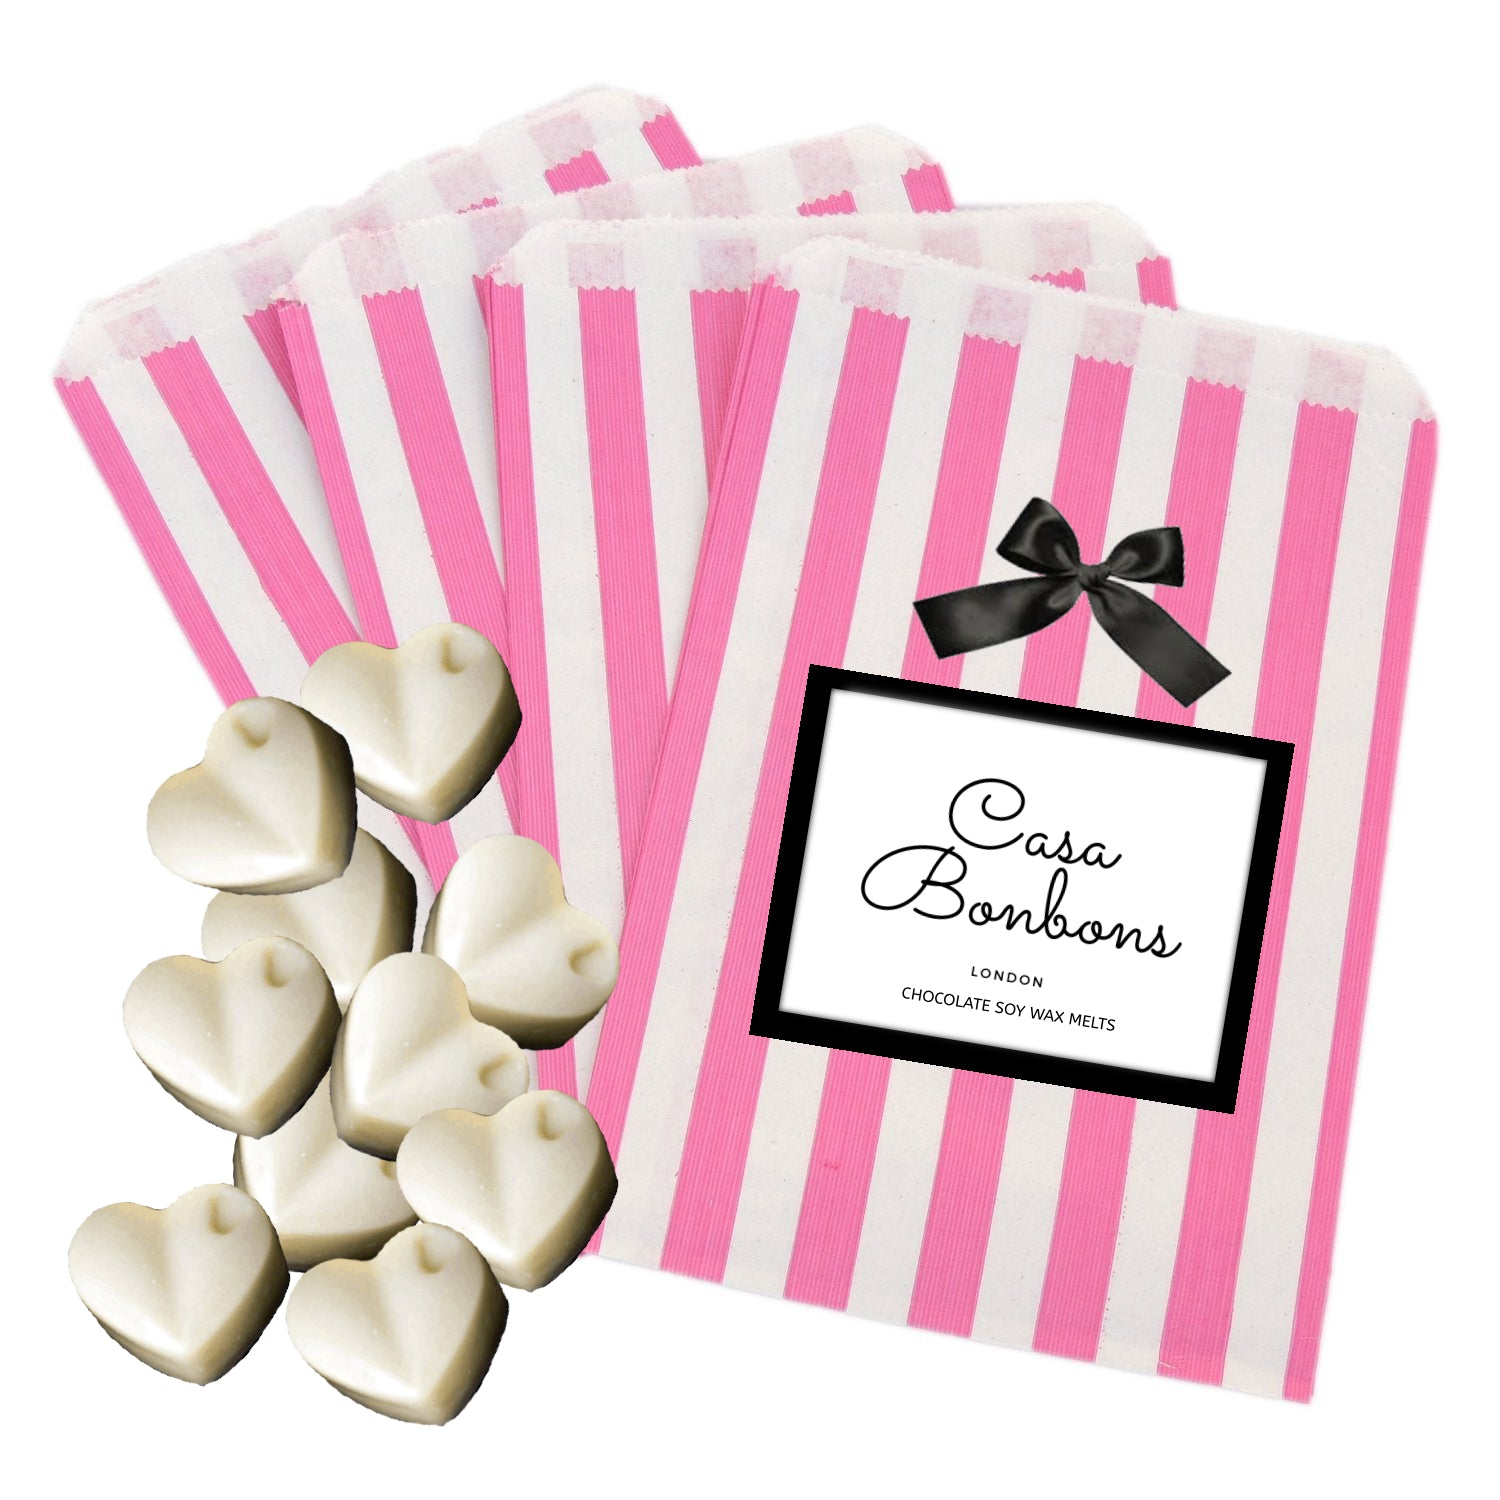 Chocolate scented Soy Wax Melts (10 hearts) PREORDER delivery 15th December - natoorio